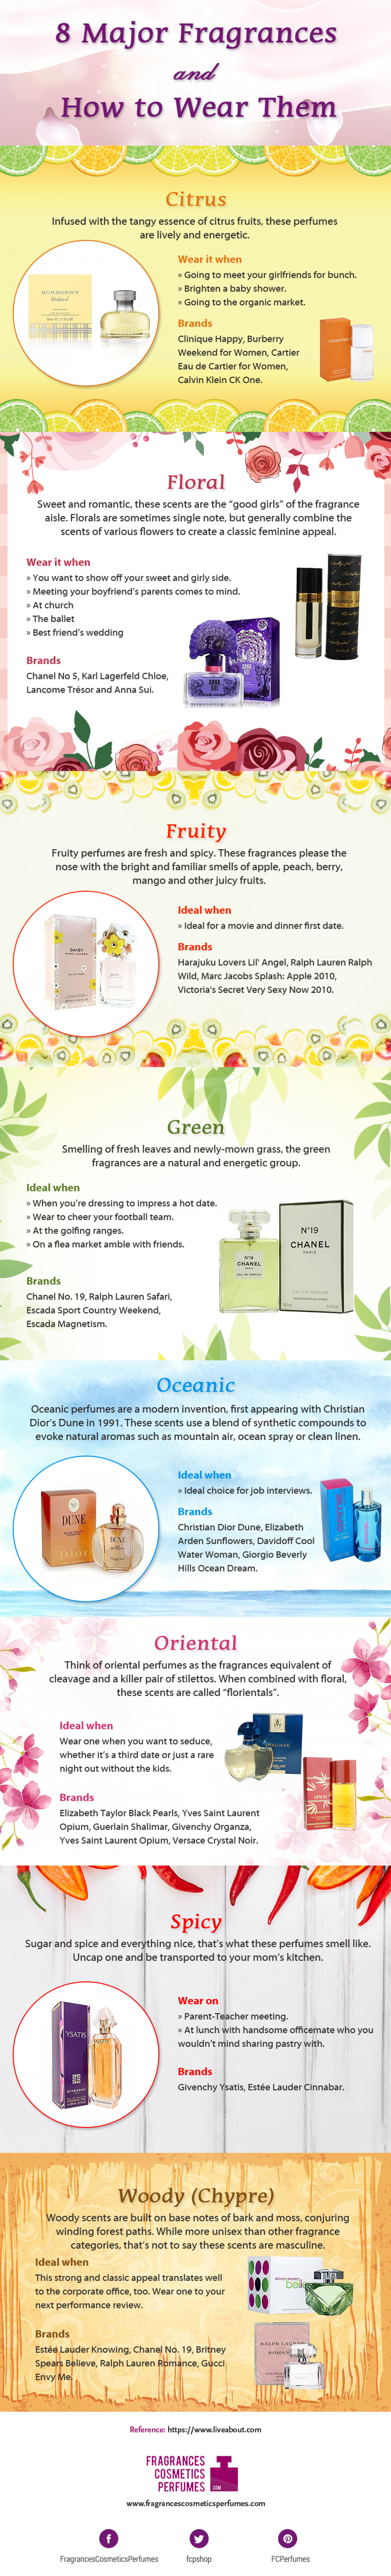 Major Fragrances and How to Wear Them Infographic